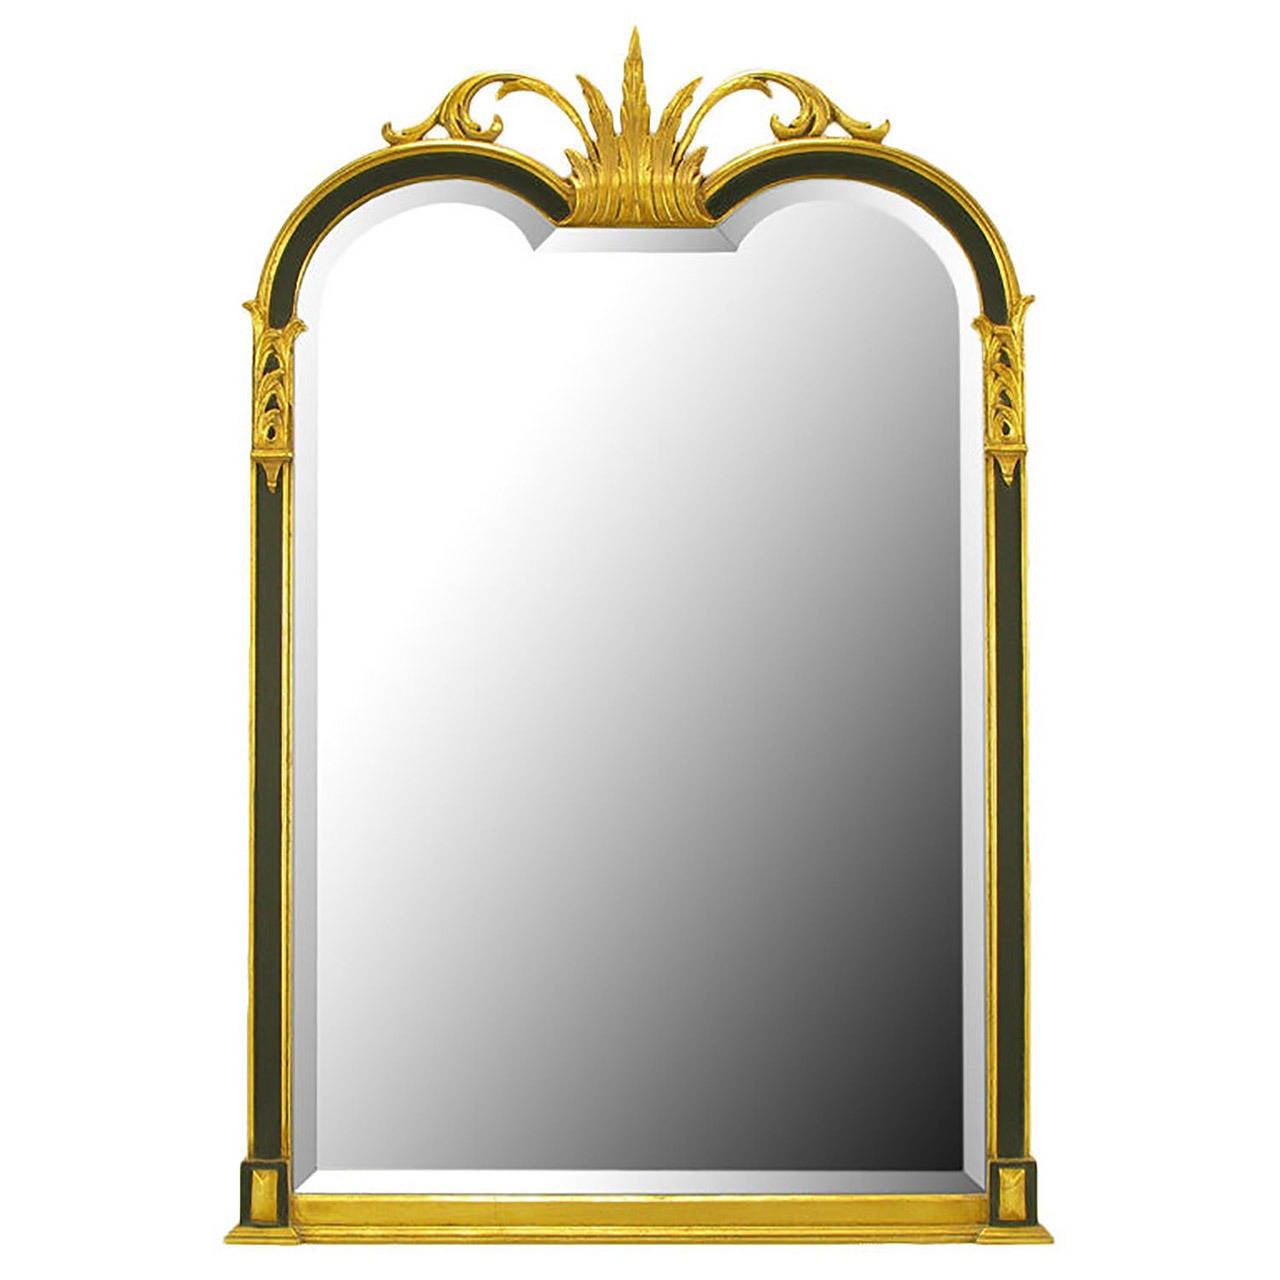 Empire Revival Parcel-Gilt and Black Lacquer Wall Mirror